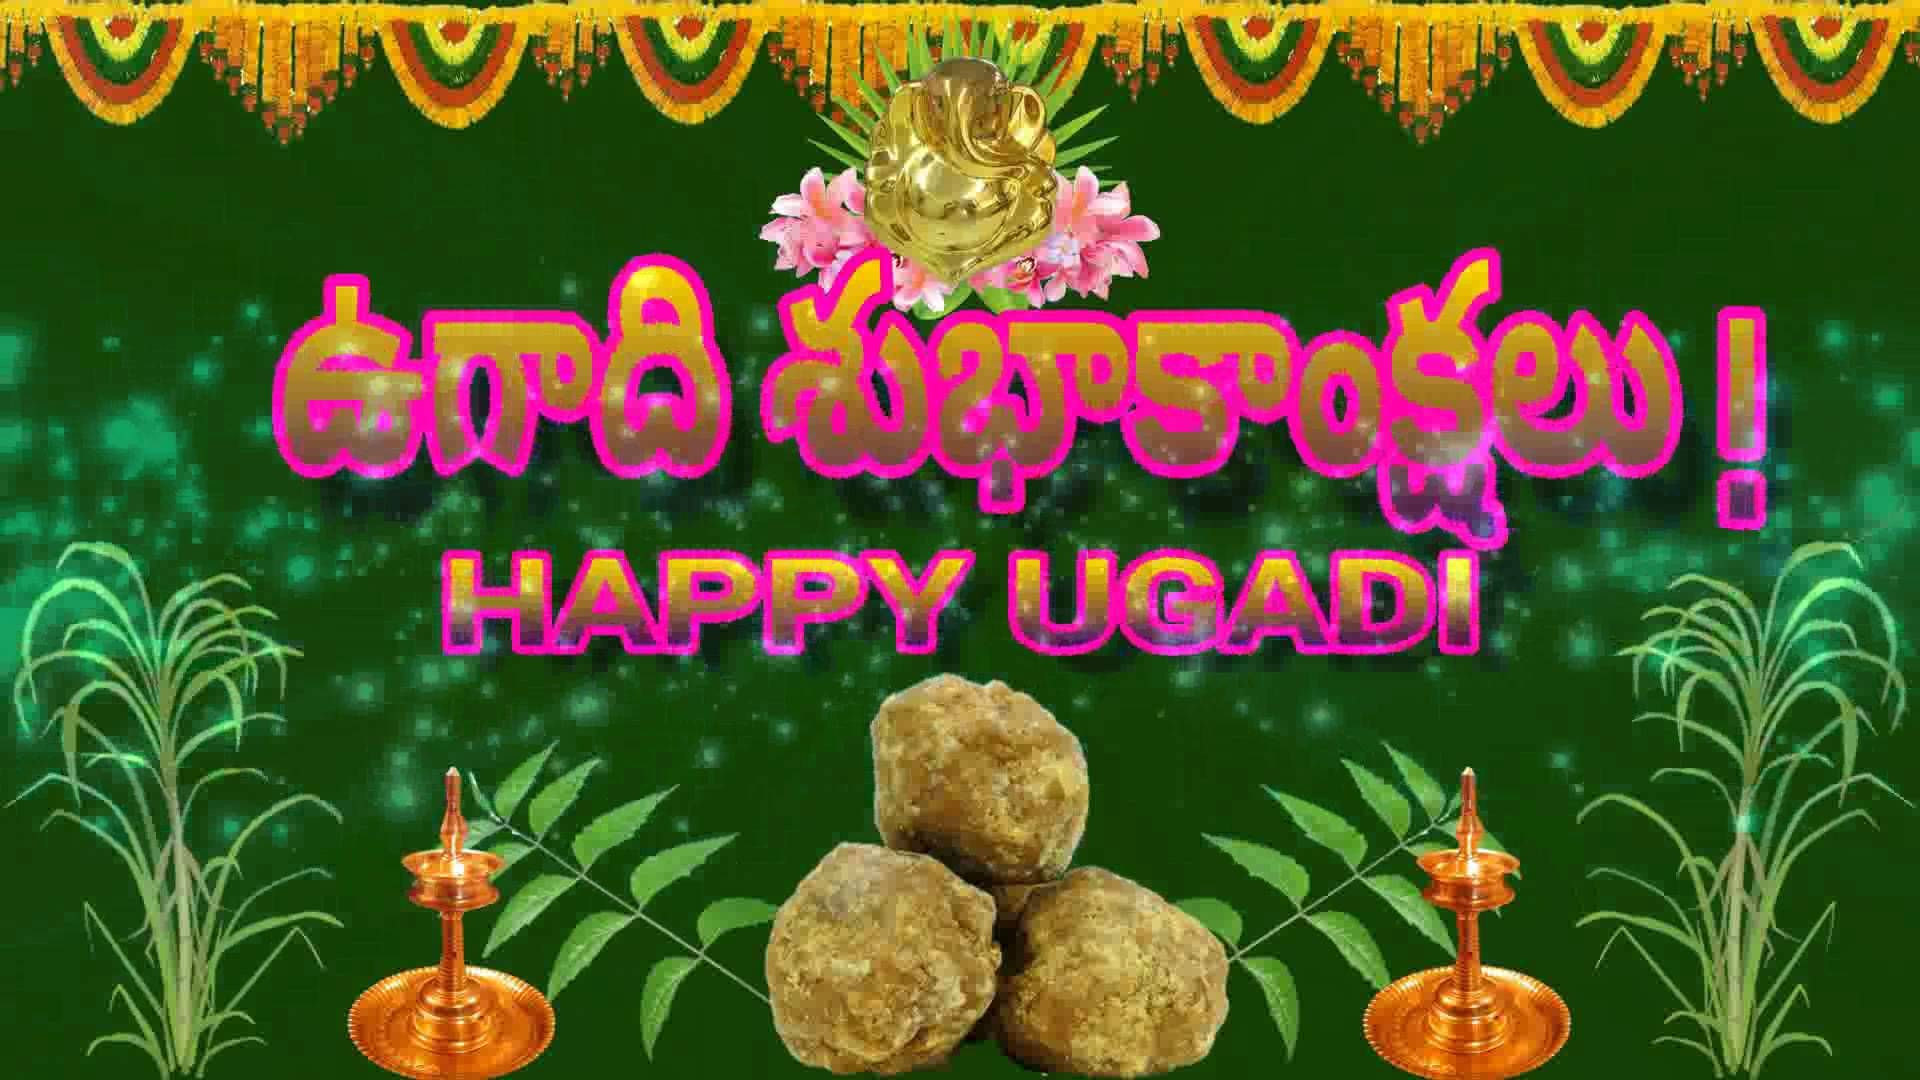 Happy ugadi ugadi wishes in telugu ugadi 2016 ugadi greetings happy ugadi ugadi wishes in telugu ugadi 2016 ugadi greetings ugadi m4hsunfo